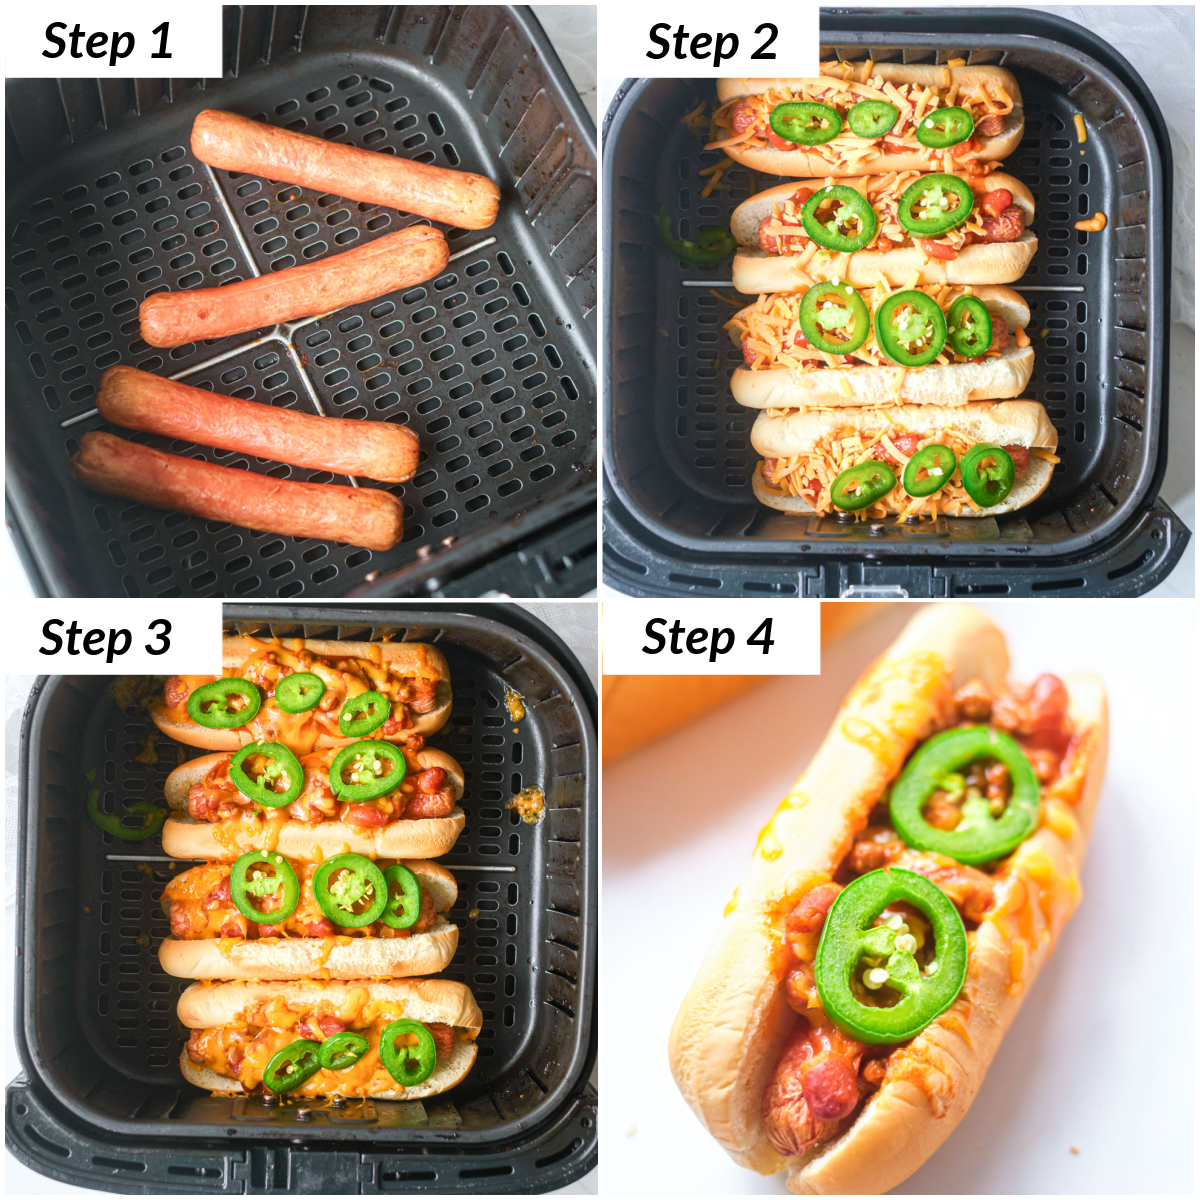 image collage showing the steps for making air fryer chili cheese dogs